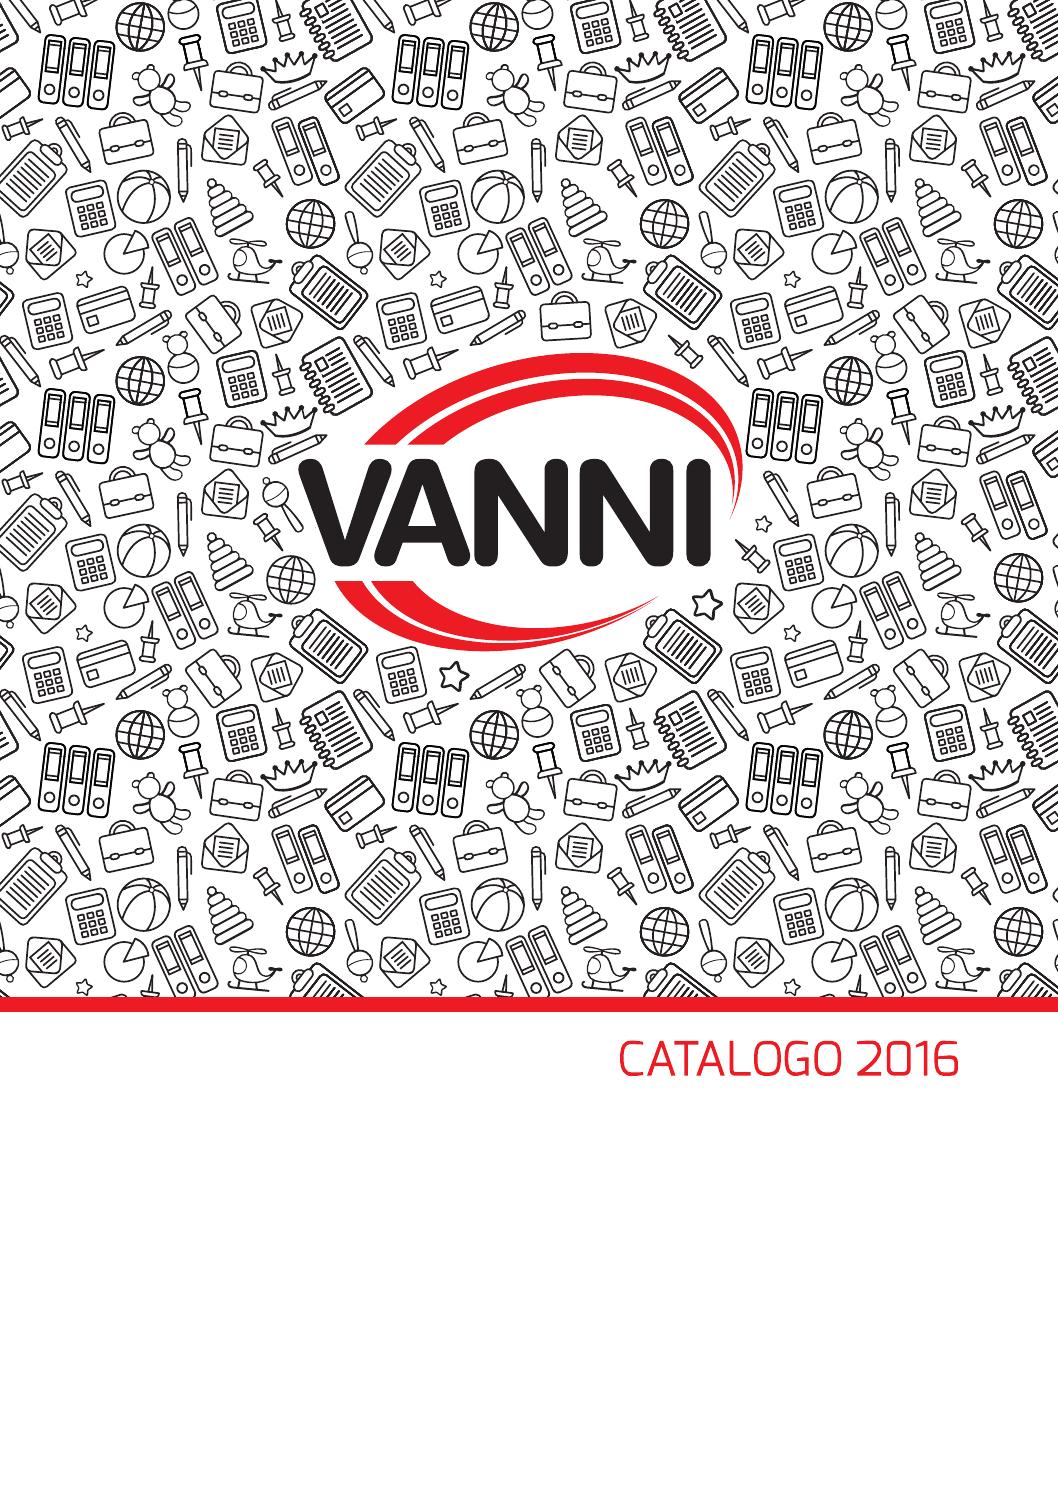 Catalogo Cancelleria Catalogo Vanni 2016 By Vanni Cancelleria Issuu